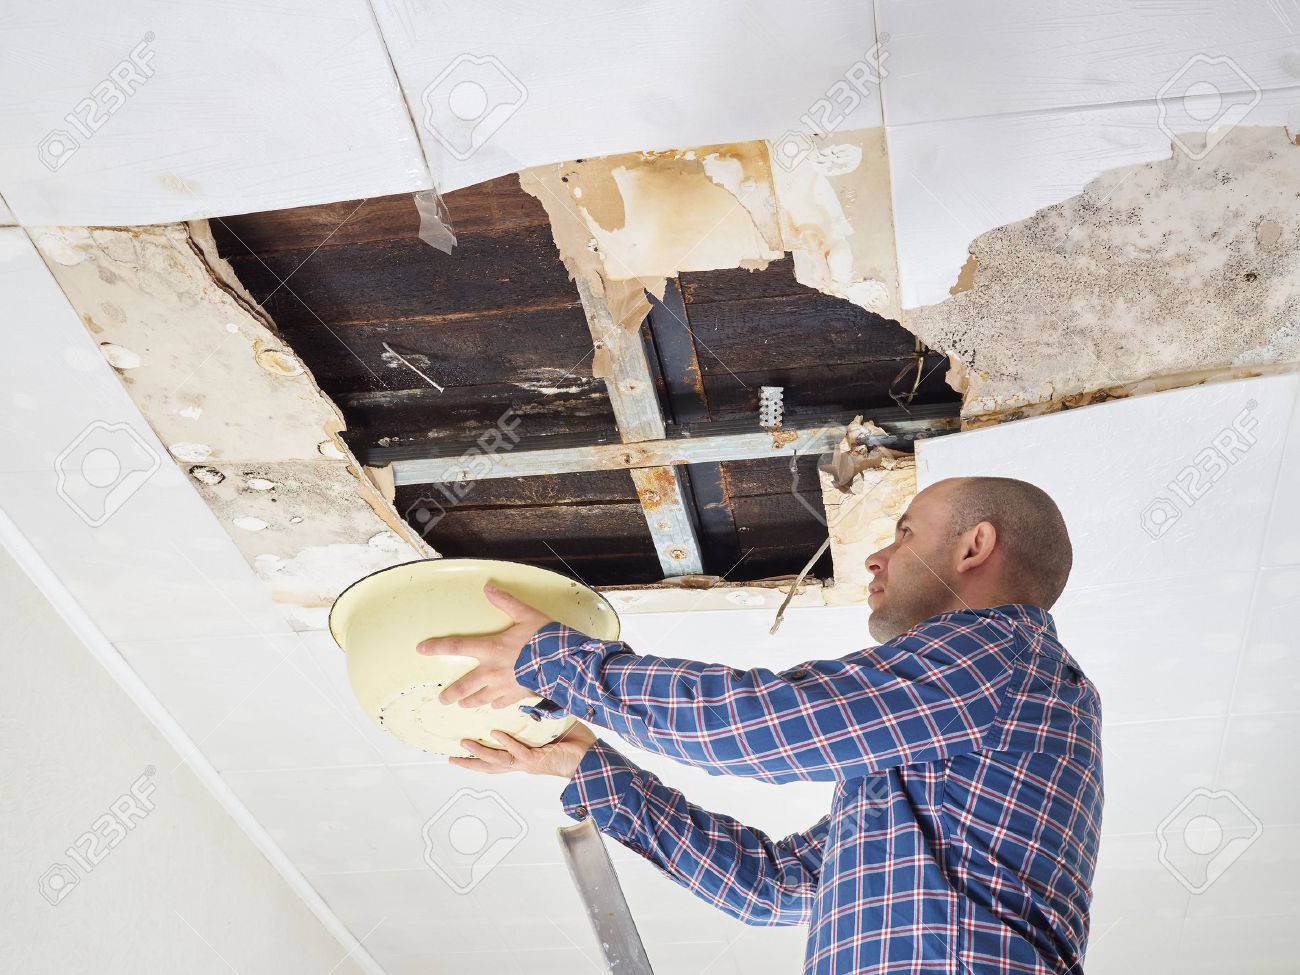 Man Collecting Water In basin From Ceiling. Ceiling panels damaged huge hole in roof from rainwater leakage.Water damaged ceiling . - 57035838